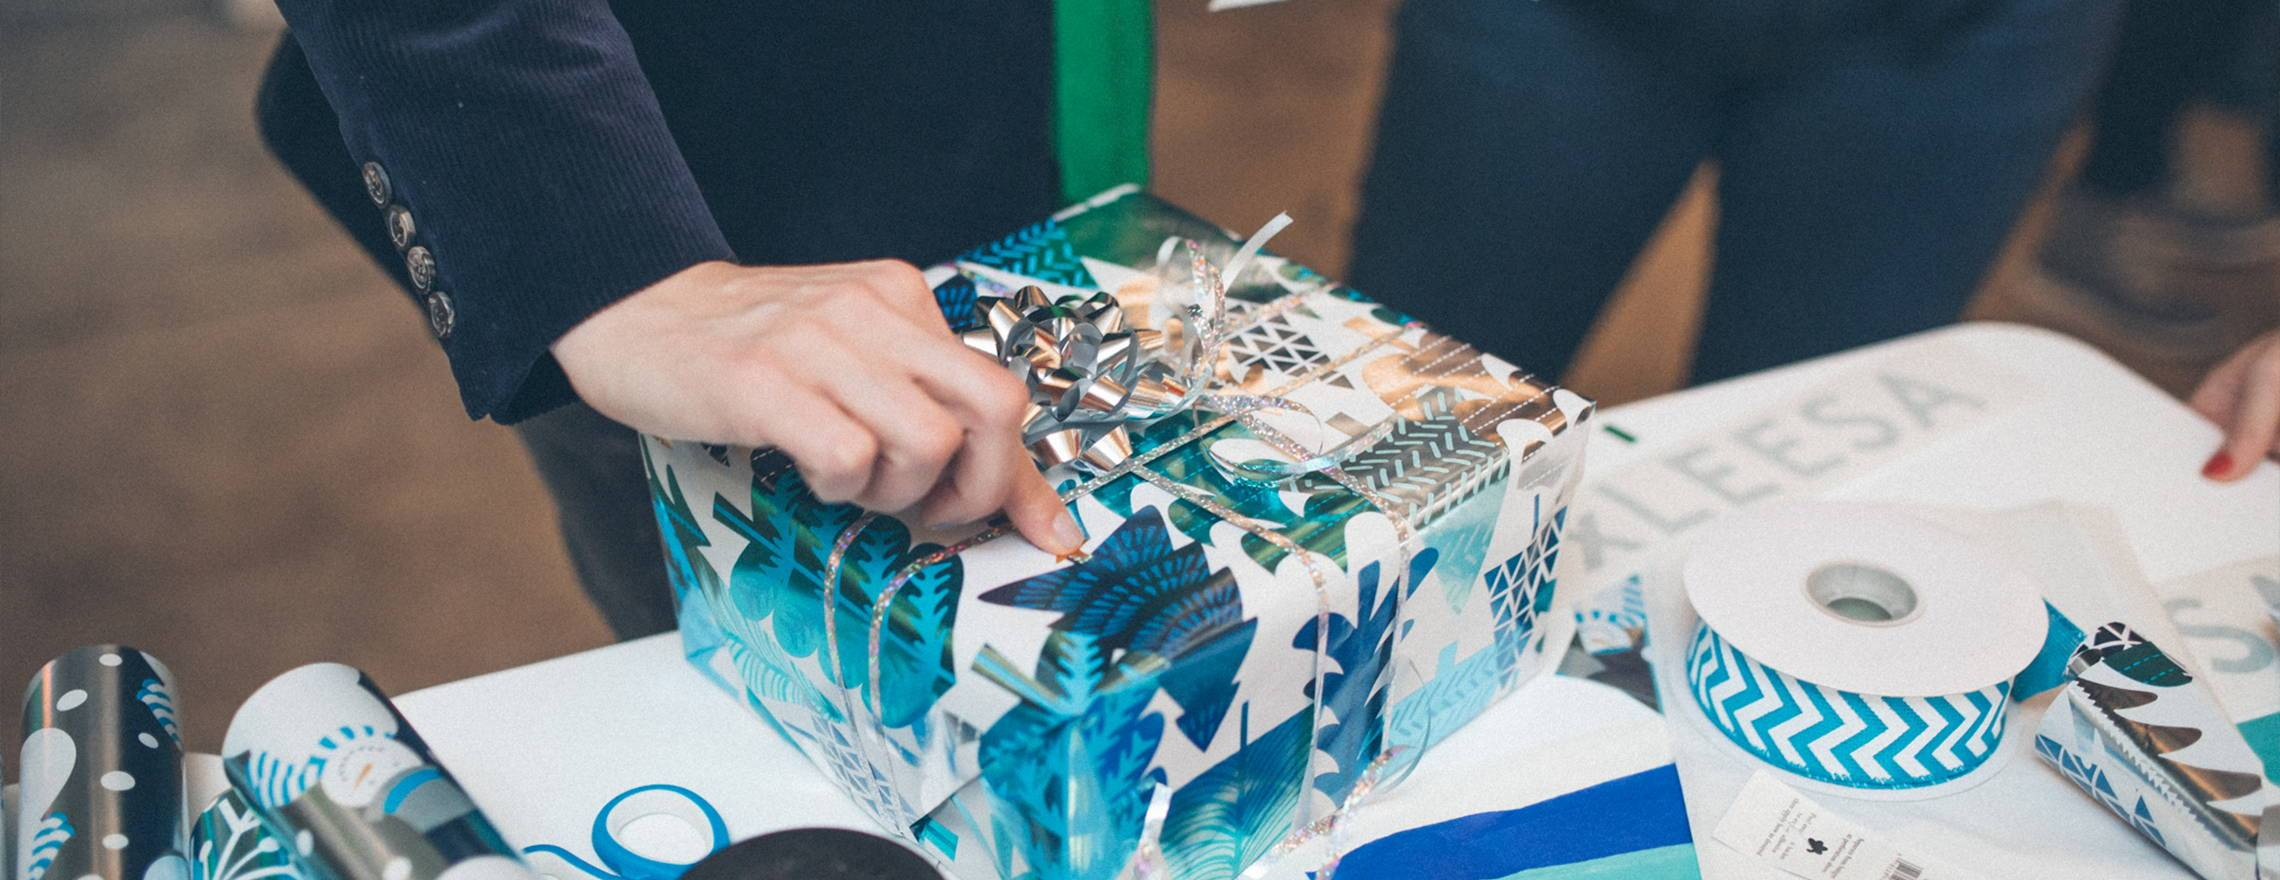 a_hand_on_a_blue_and_white_christmas_present